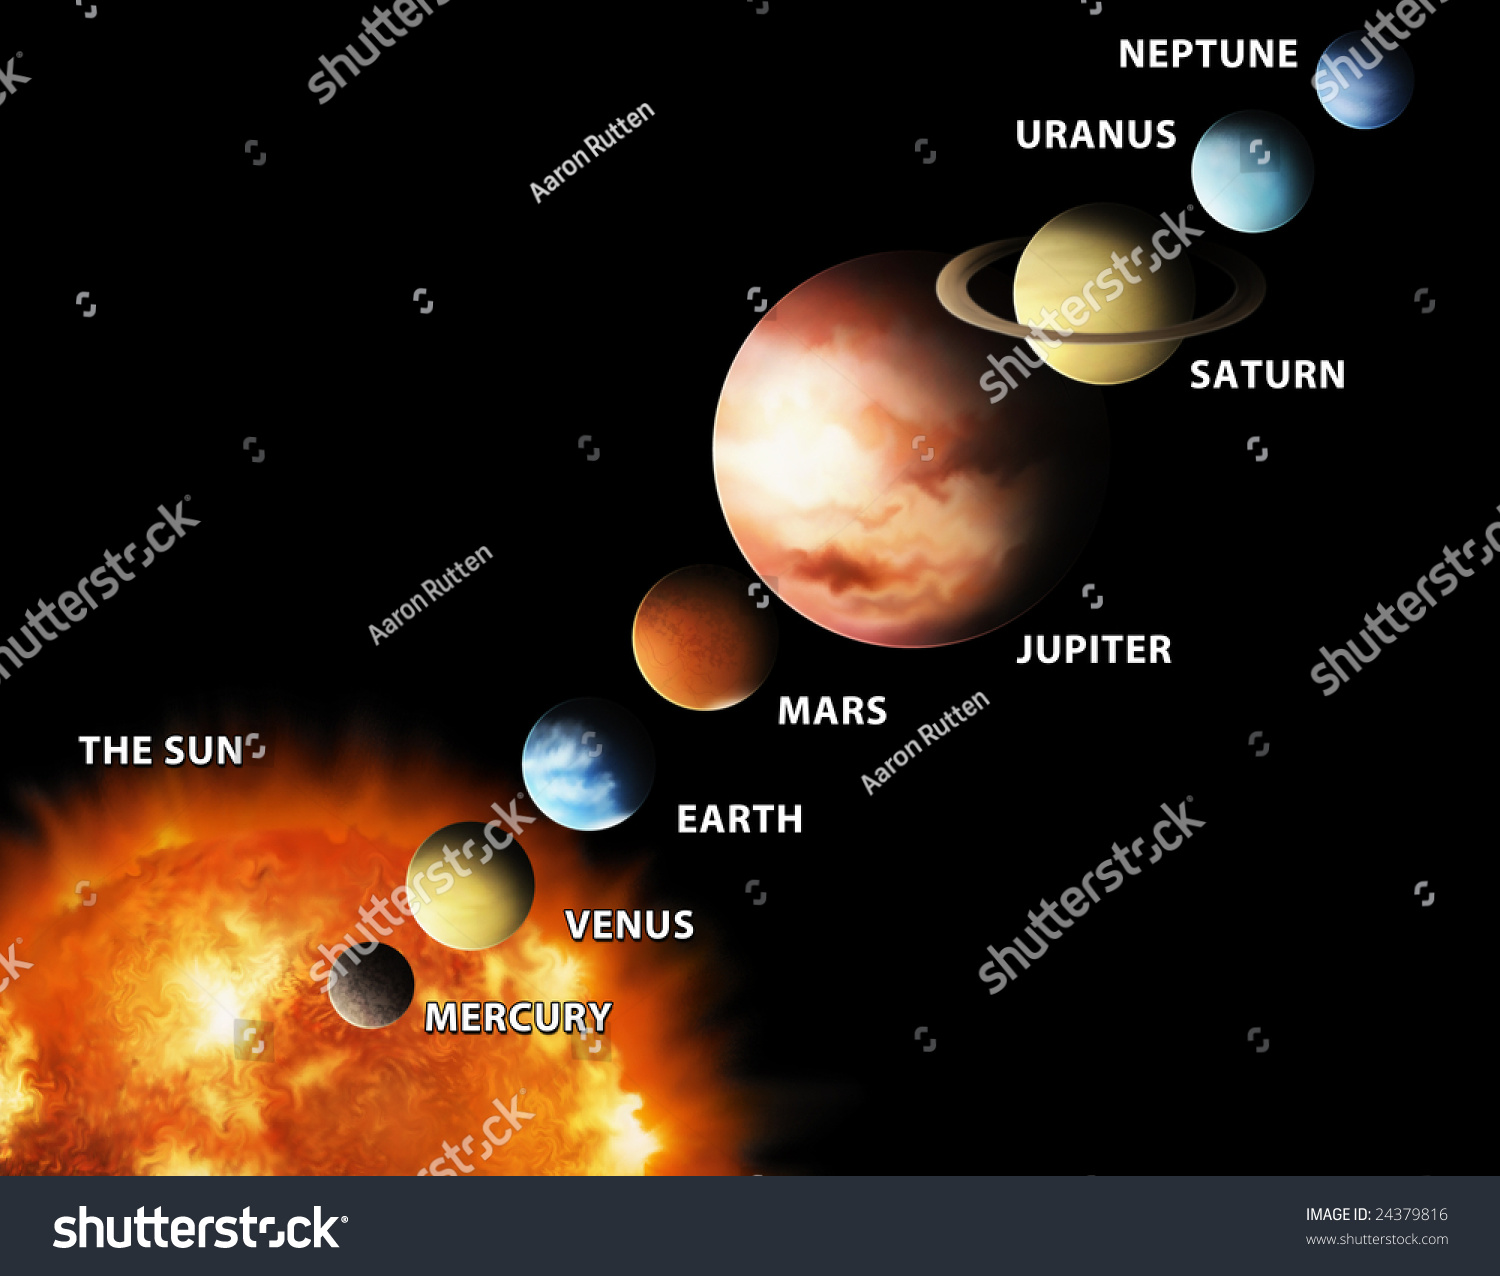 hight resolution of an illustrated diagram showing the order of planets in our solar system